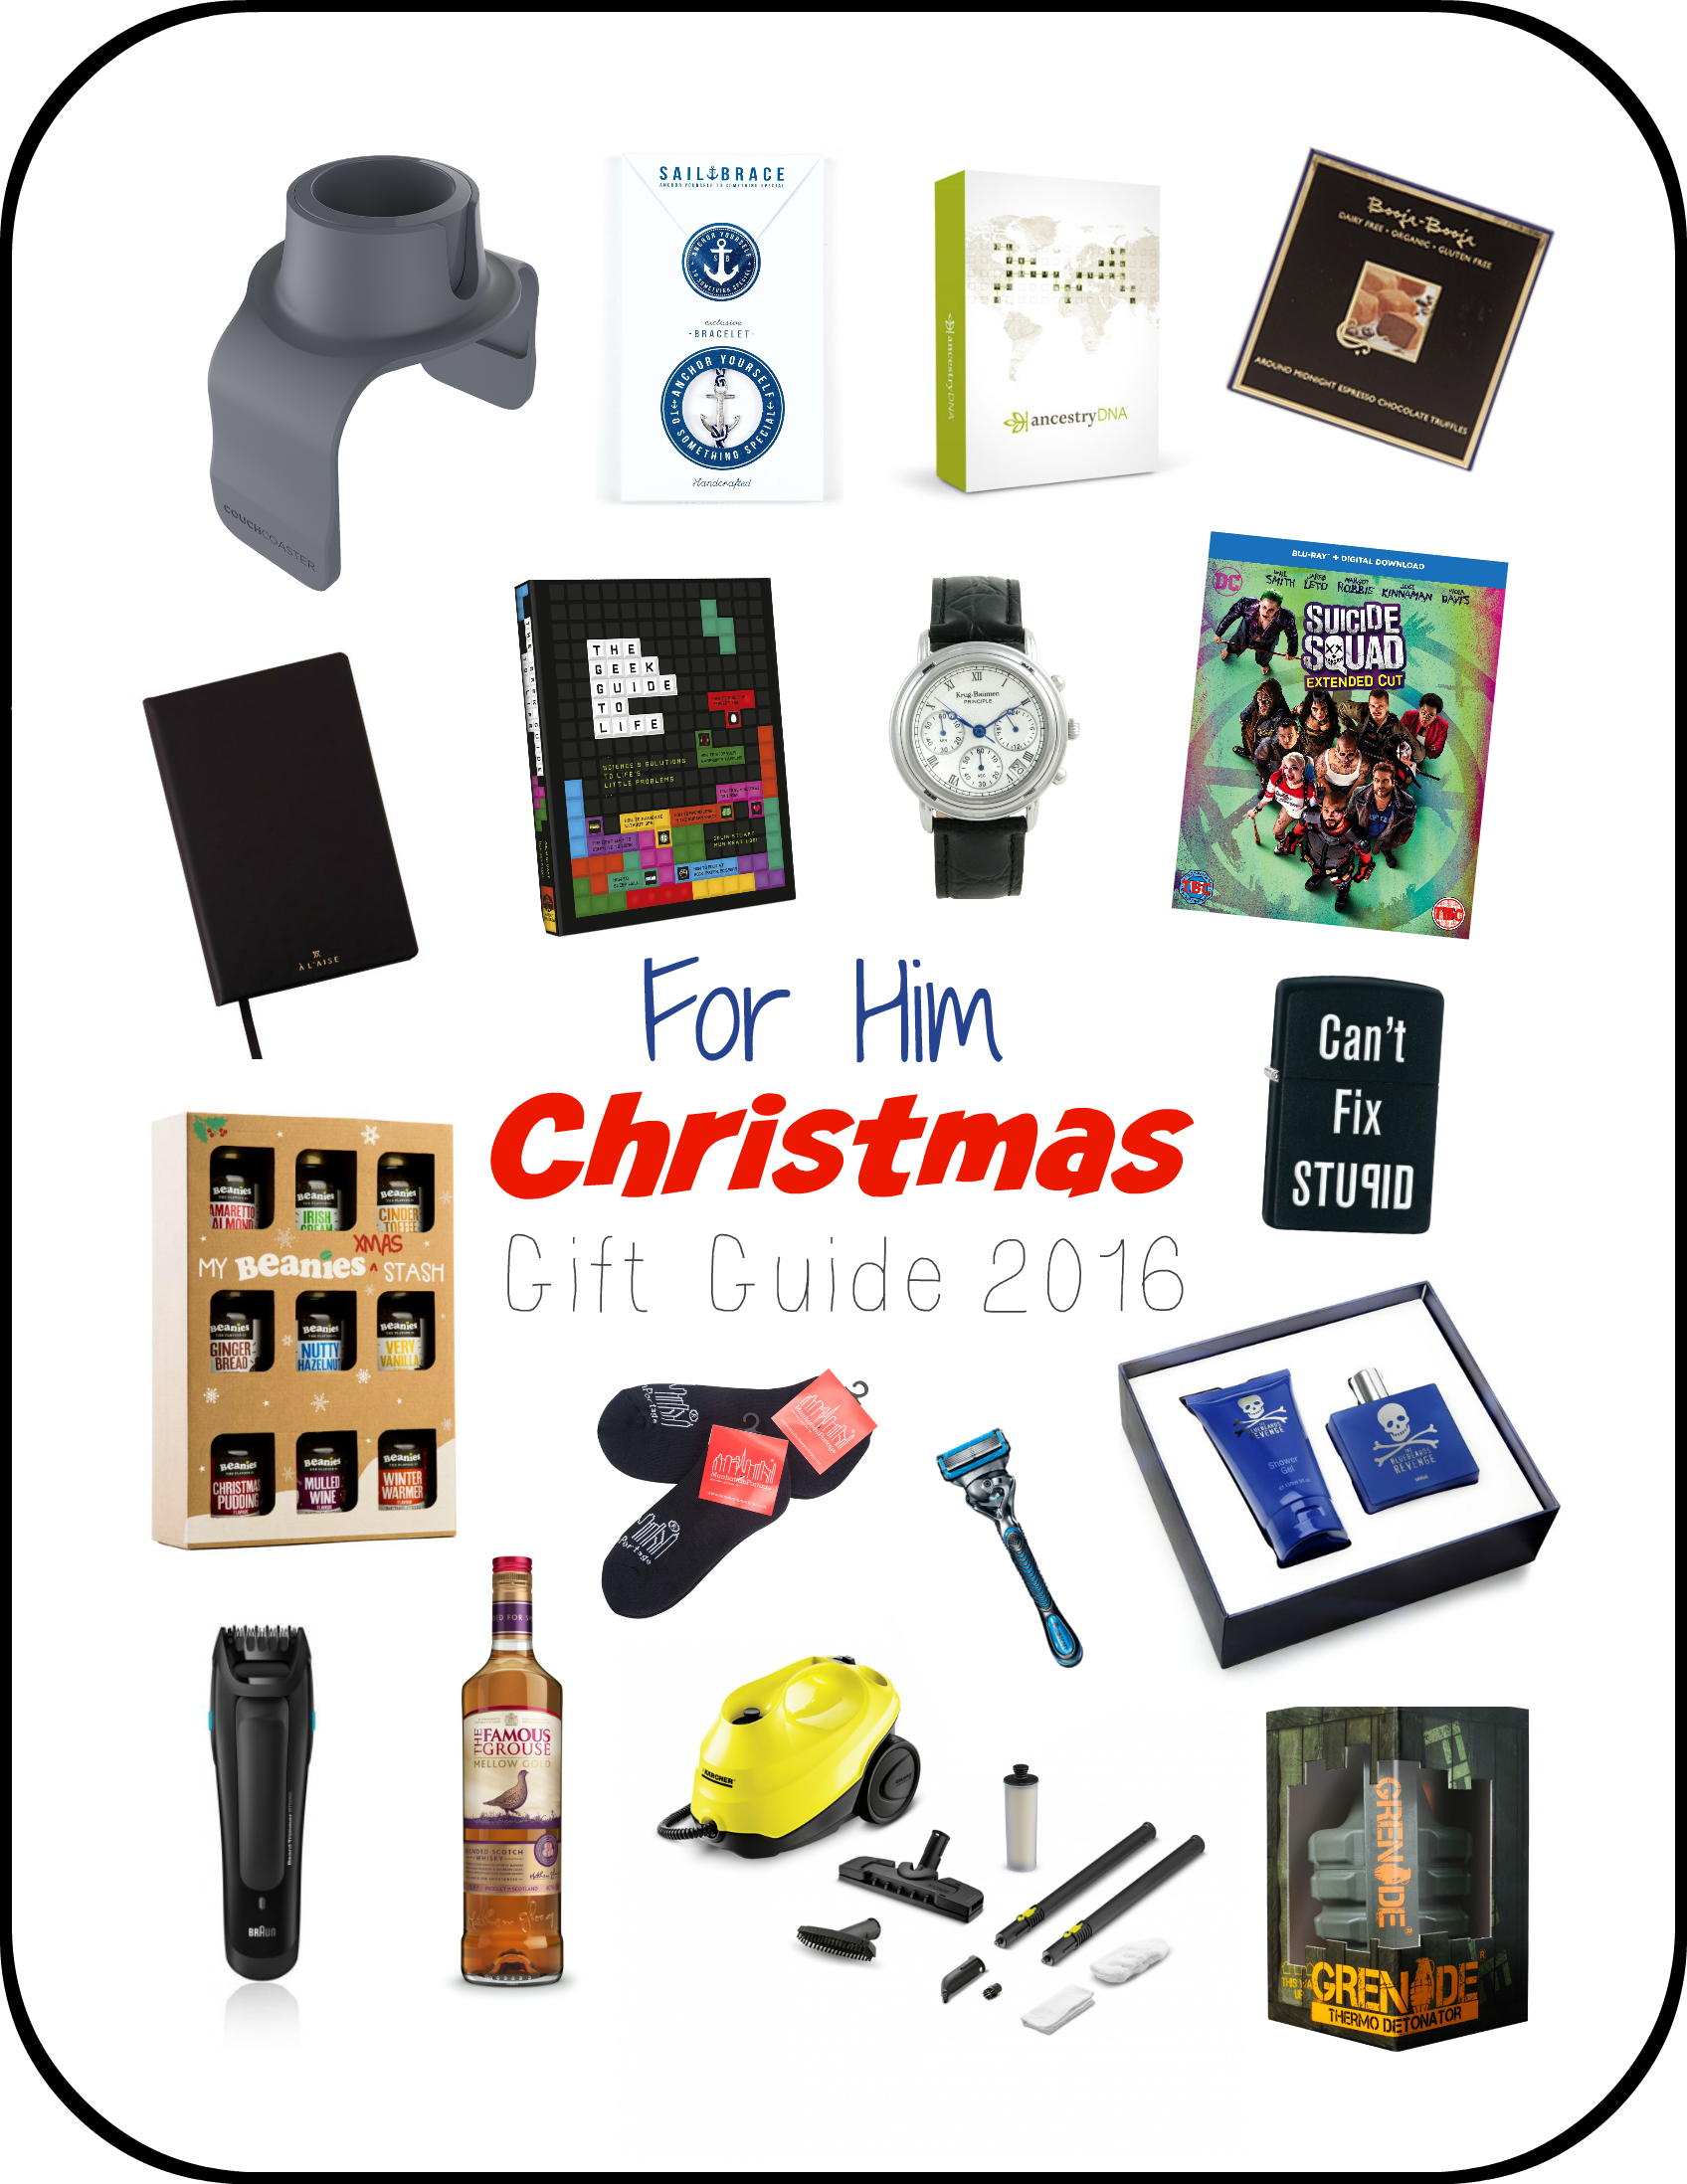 For him Christmas gift guide 2016 - serenity You